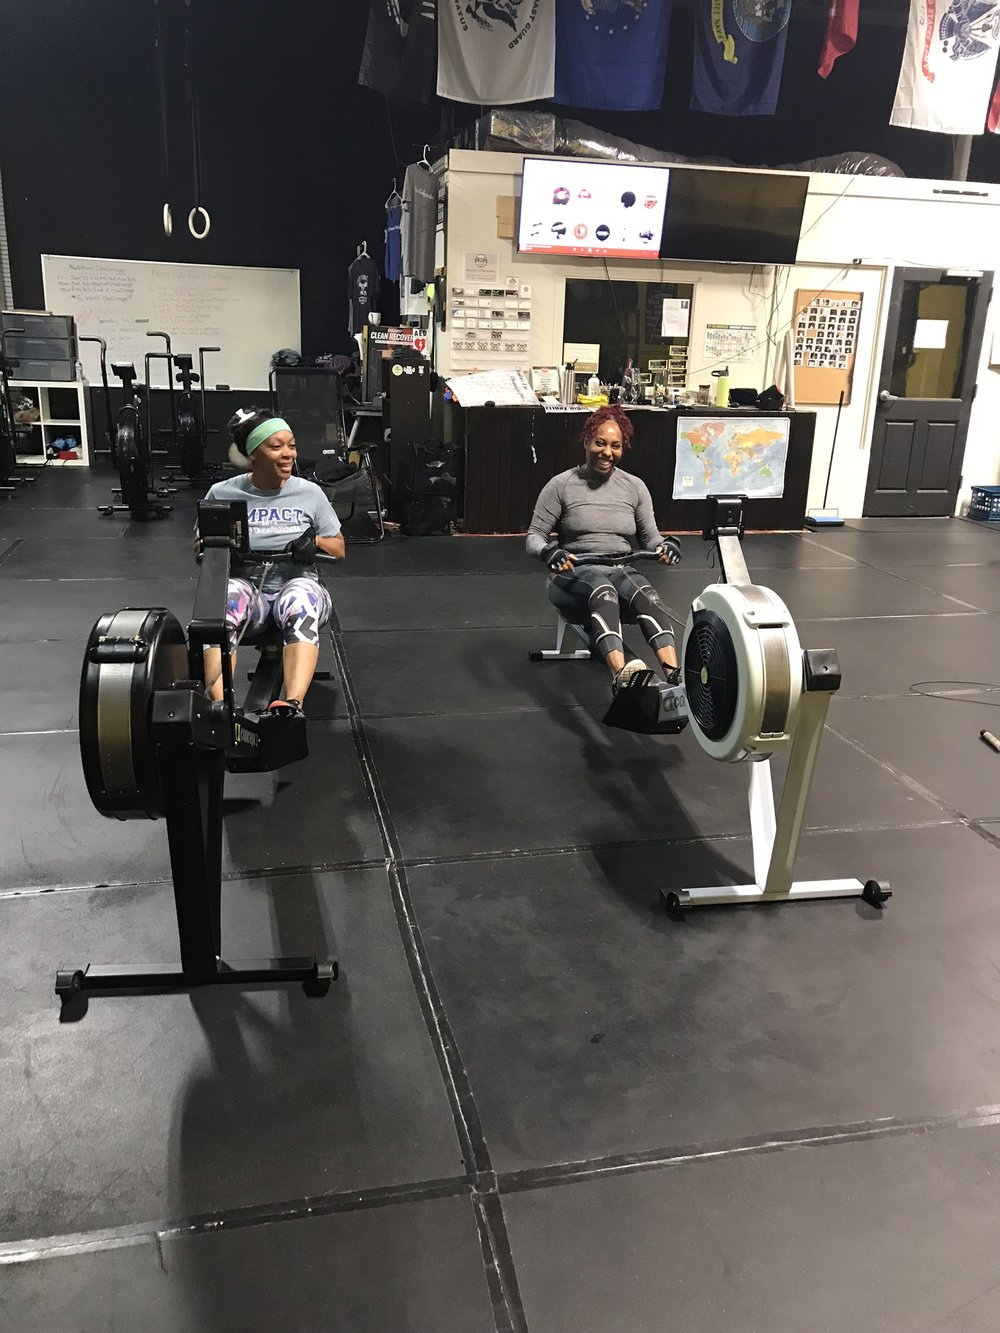 Rowing With Friends!